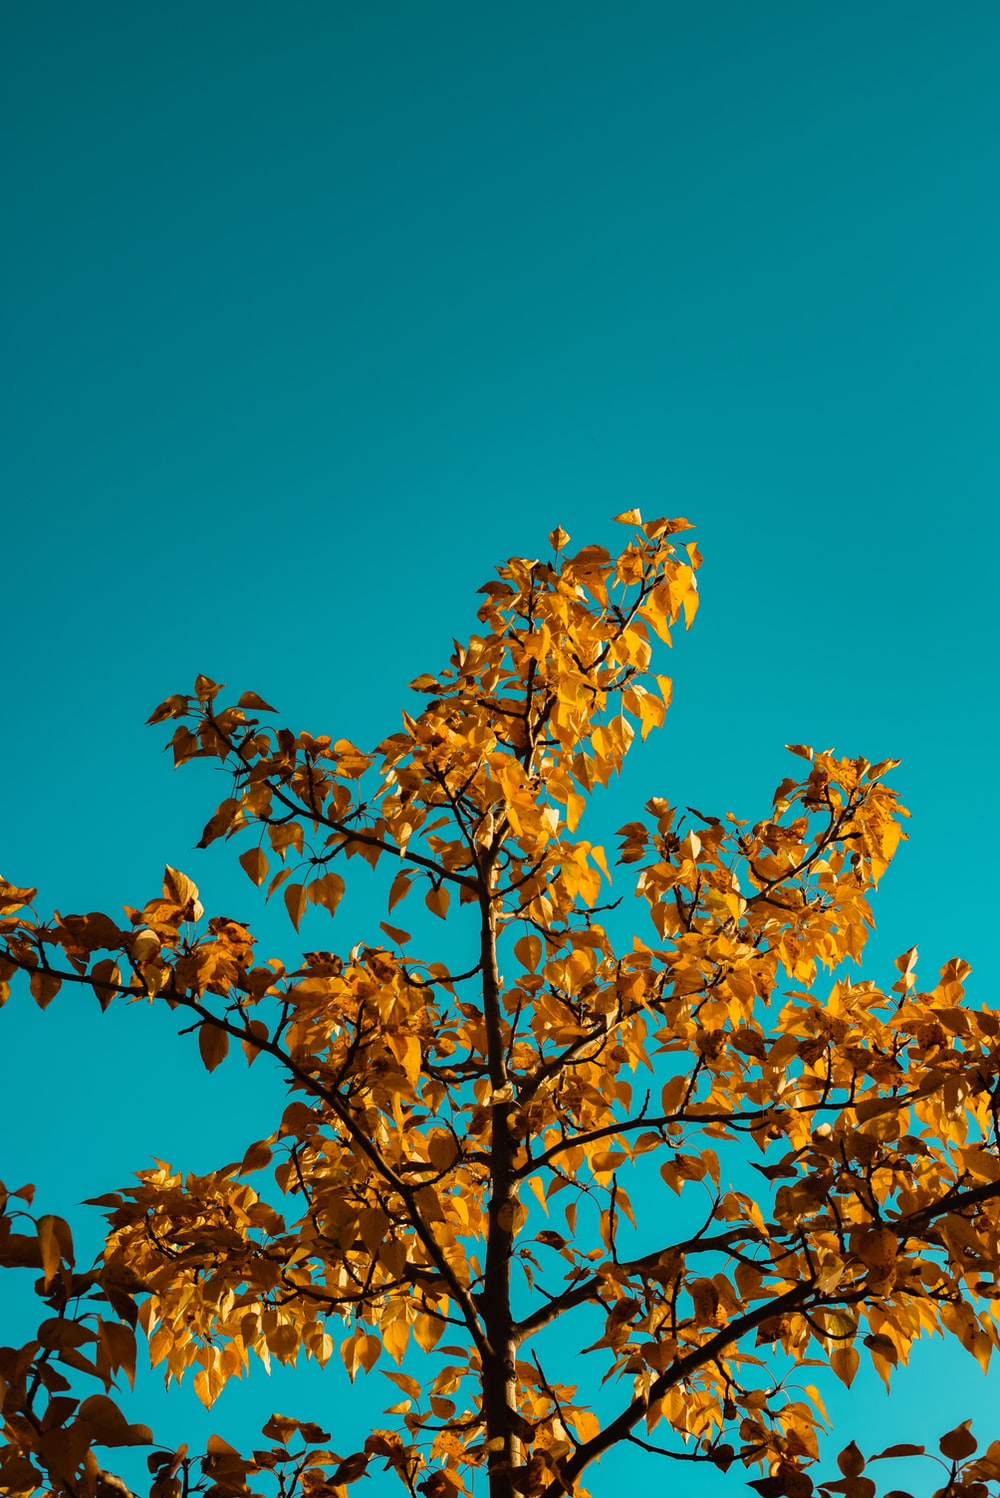 brown leaves on brown tree branch under blue sky during daytime